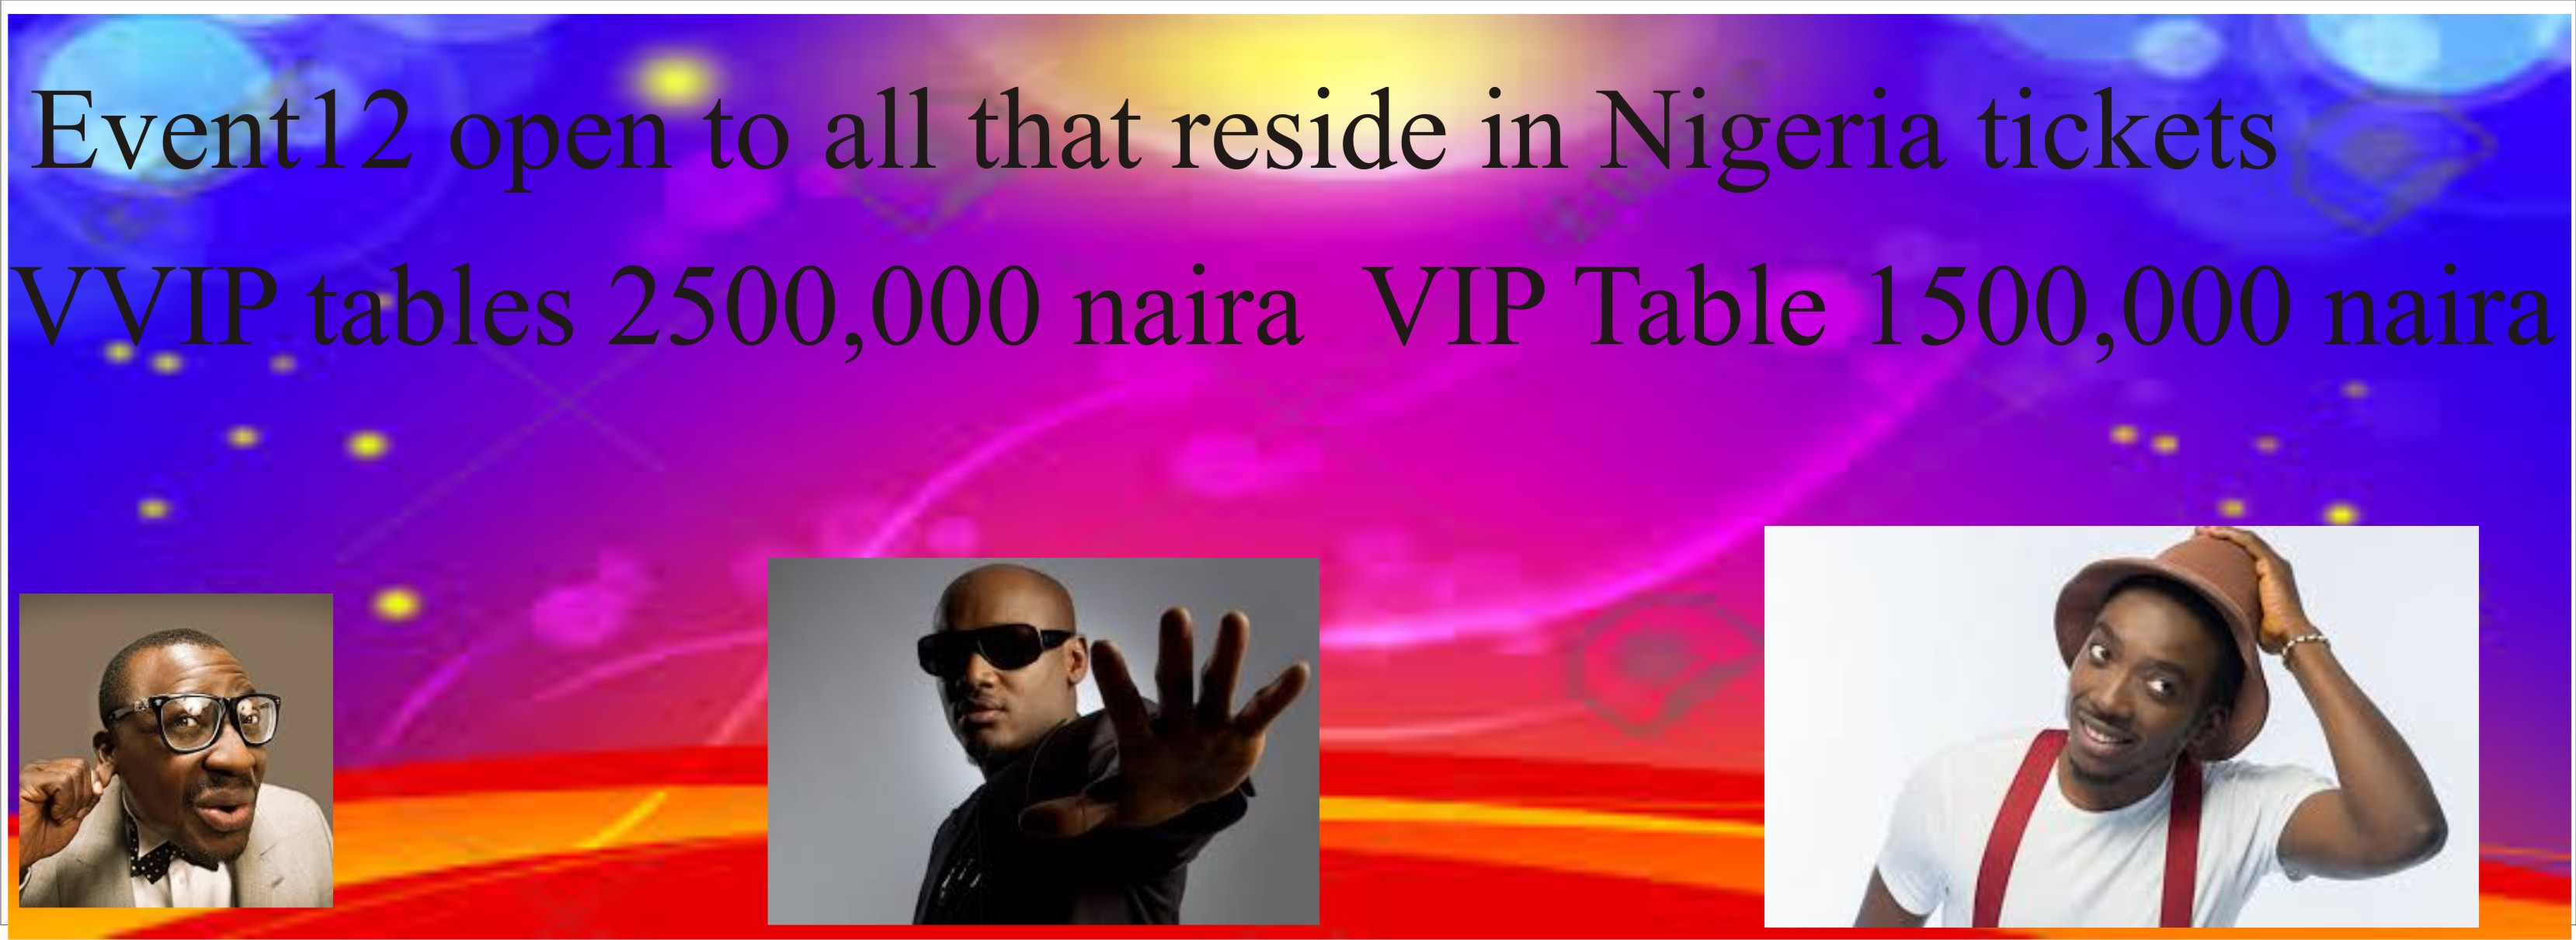 EVENT12 Post free event in Nigeria using tickethub.ng, buy and sell tickets to event